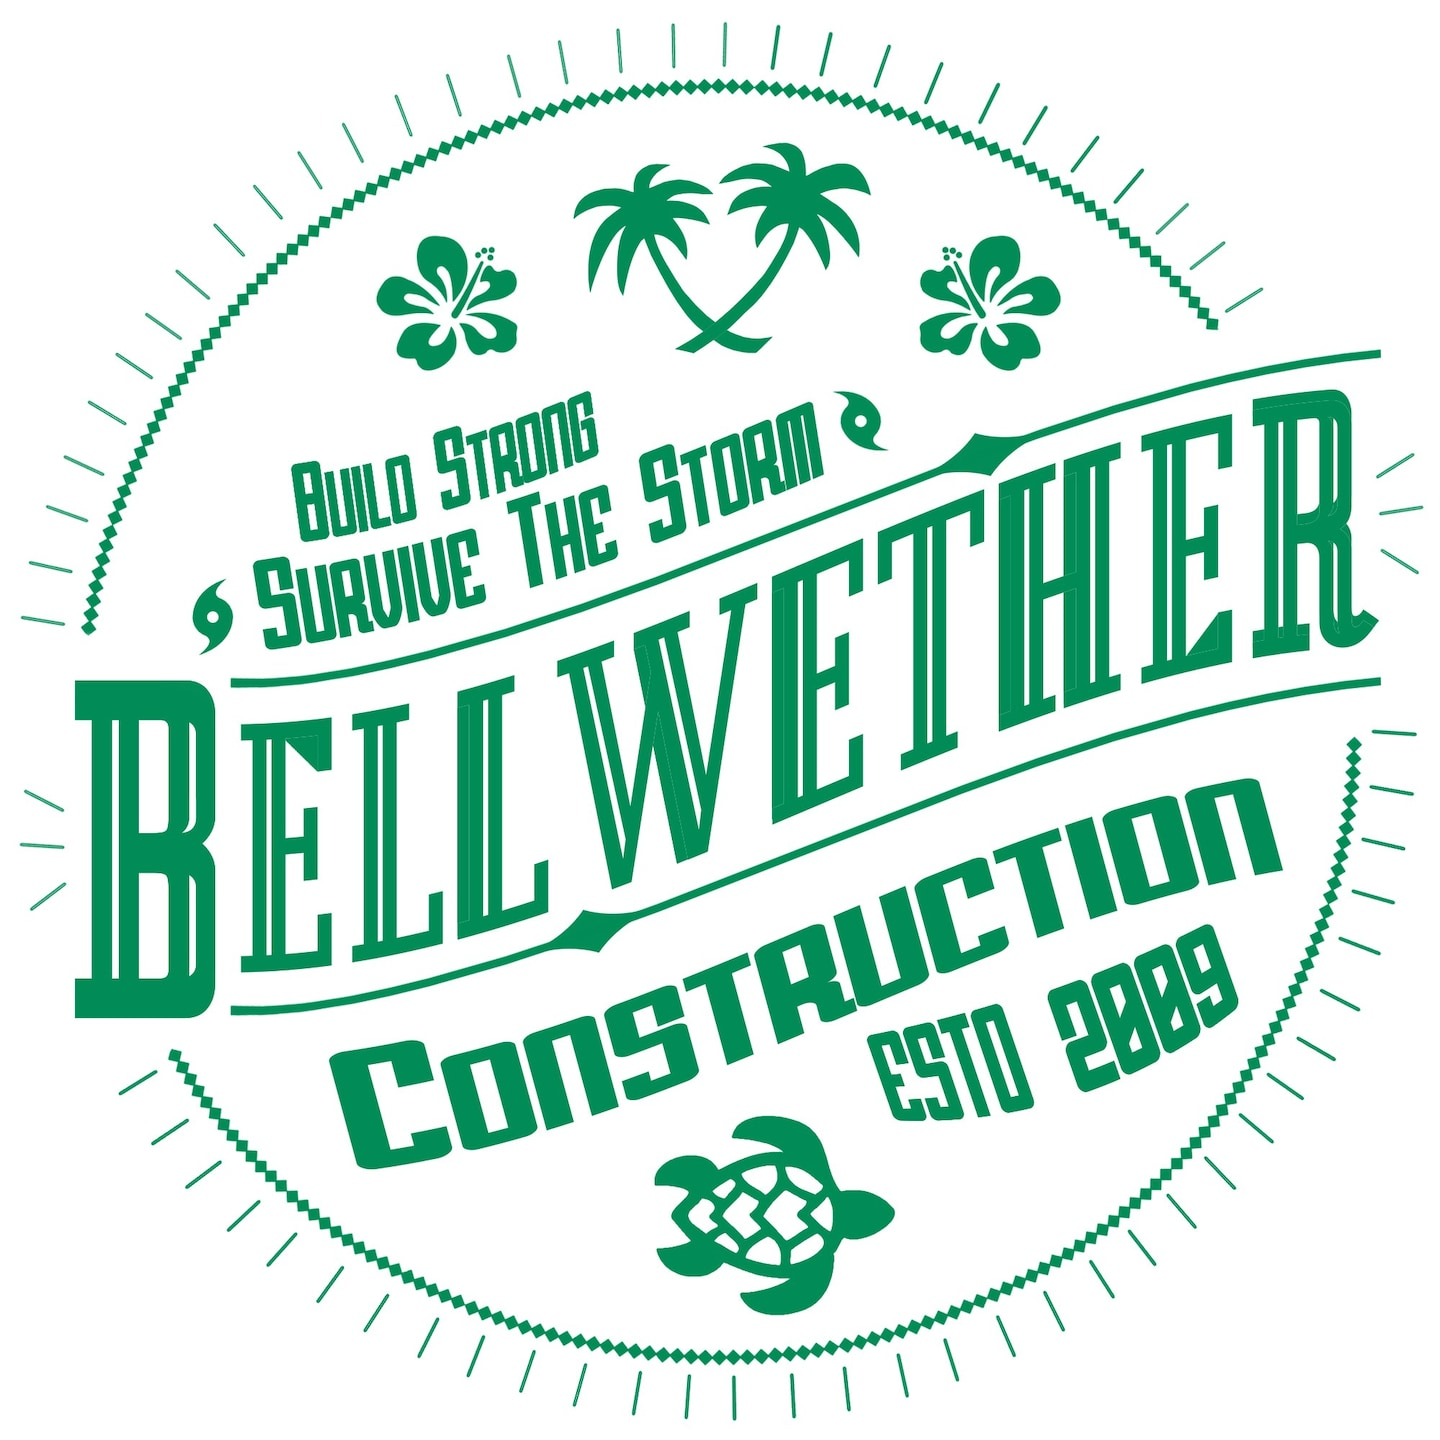 Bellwether Construction Services, LLC Reviews